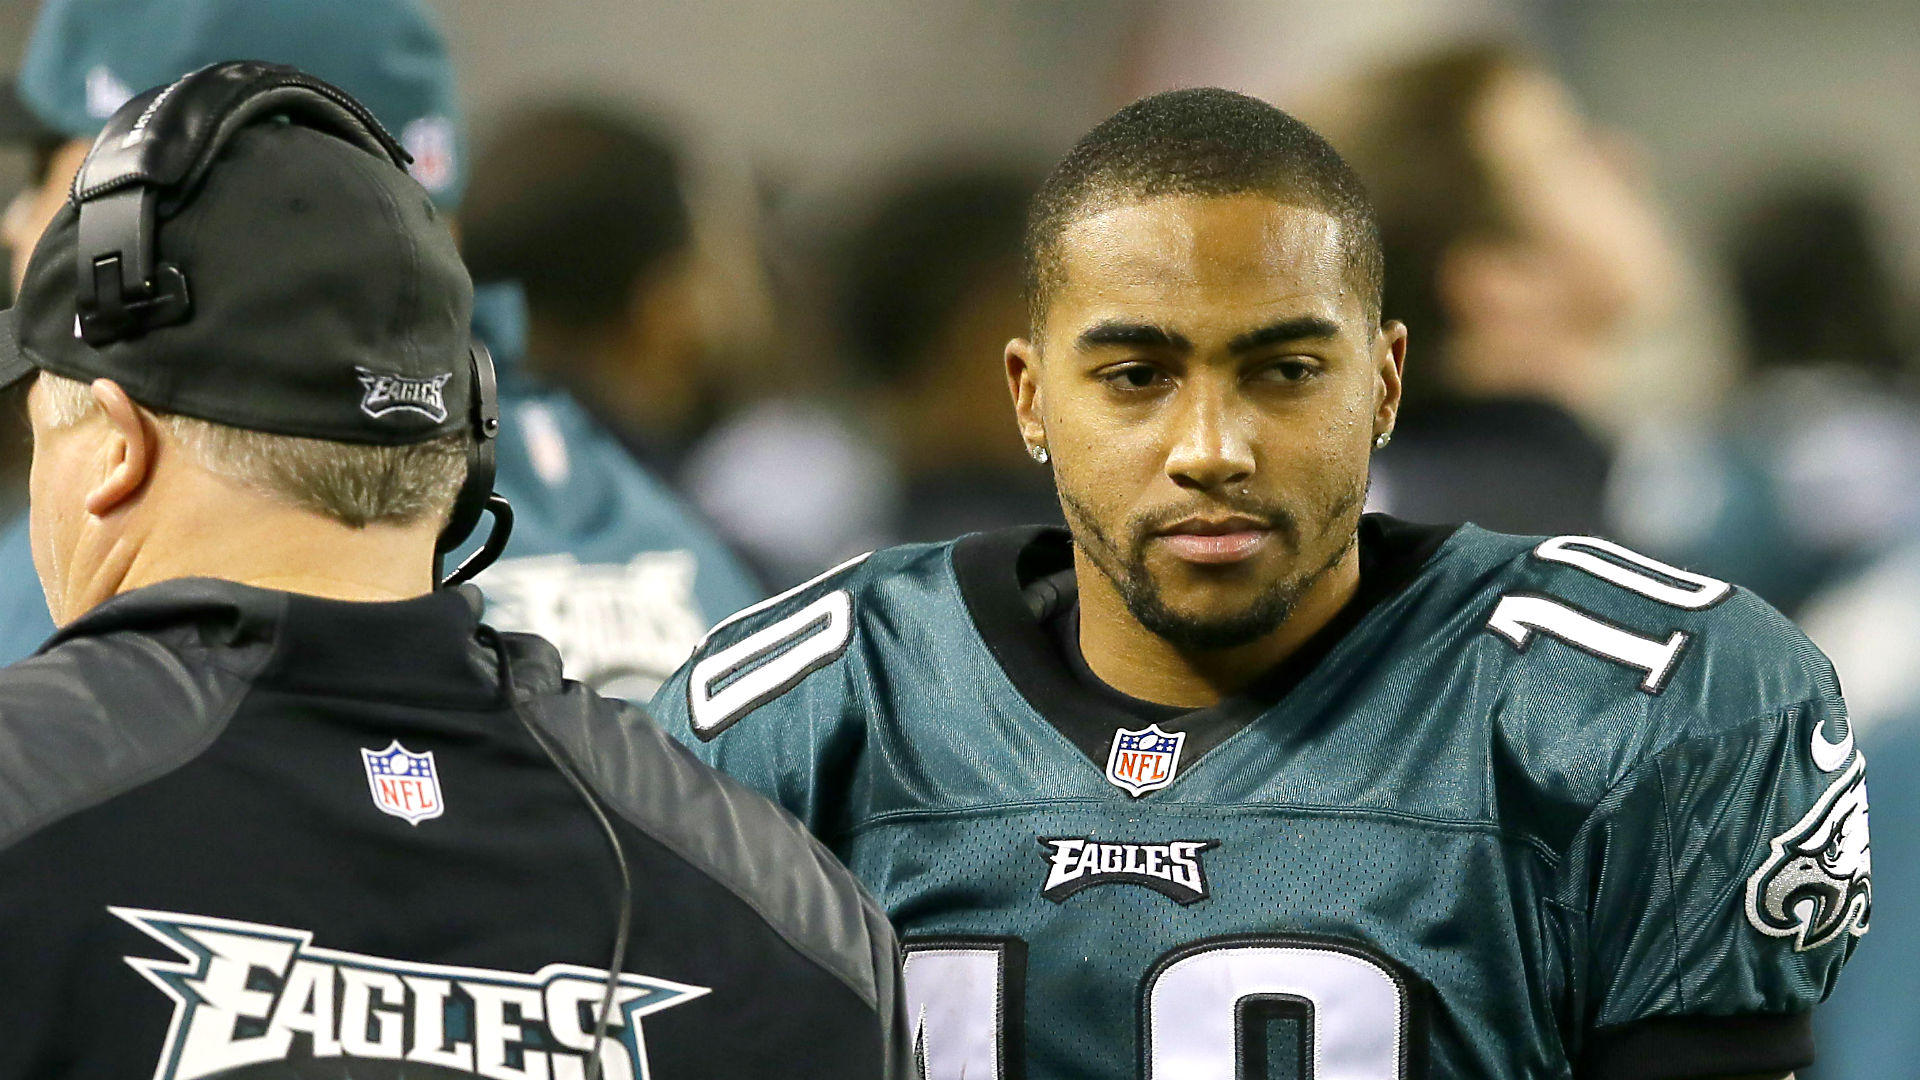 DeSean Jackson released amid reports of alleged connection to gang members